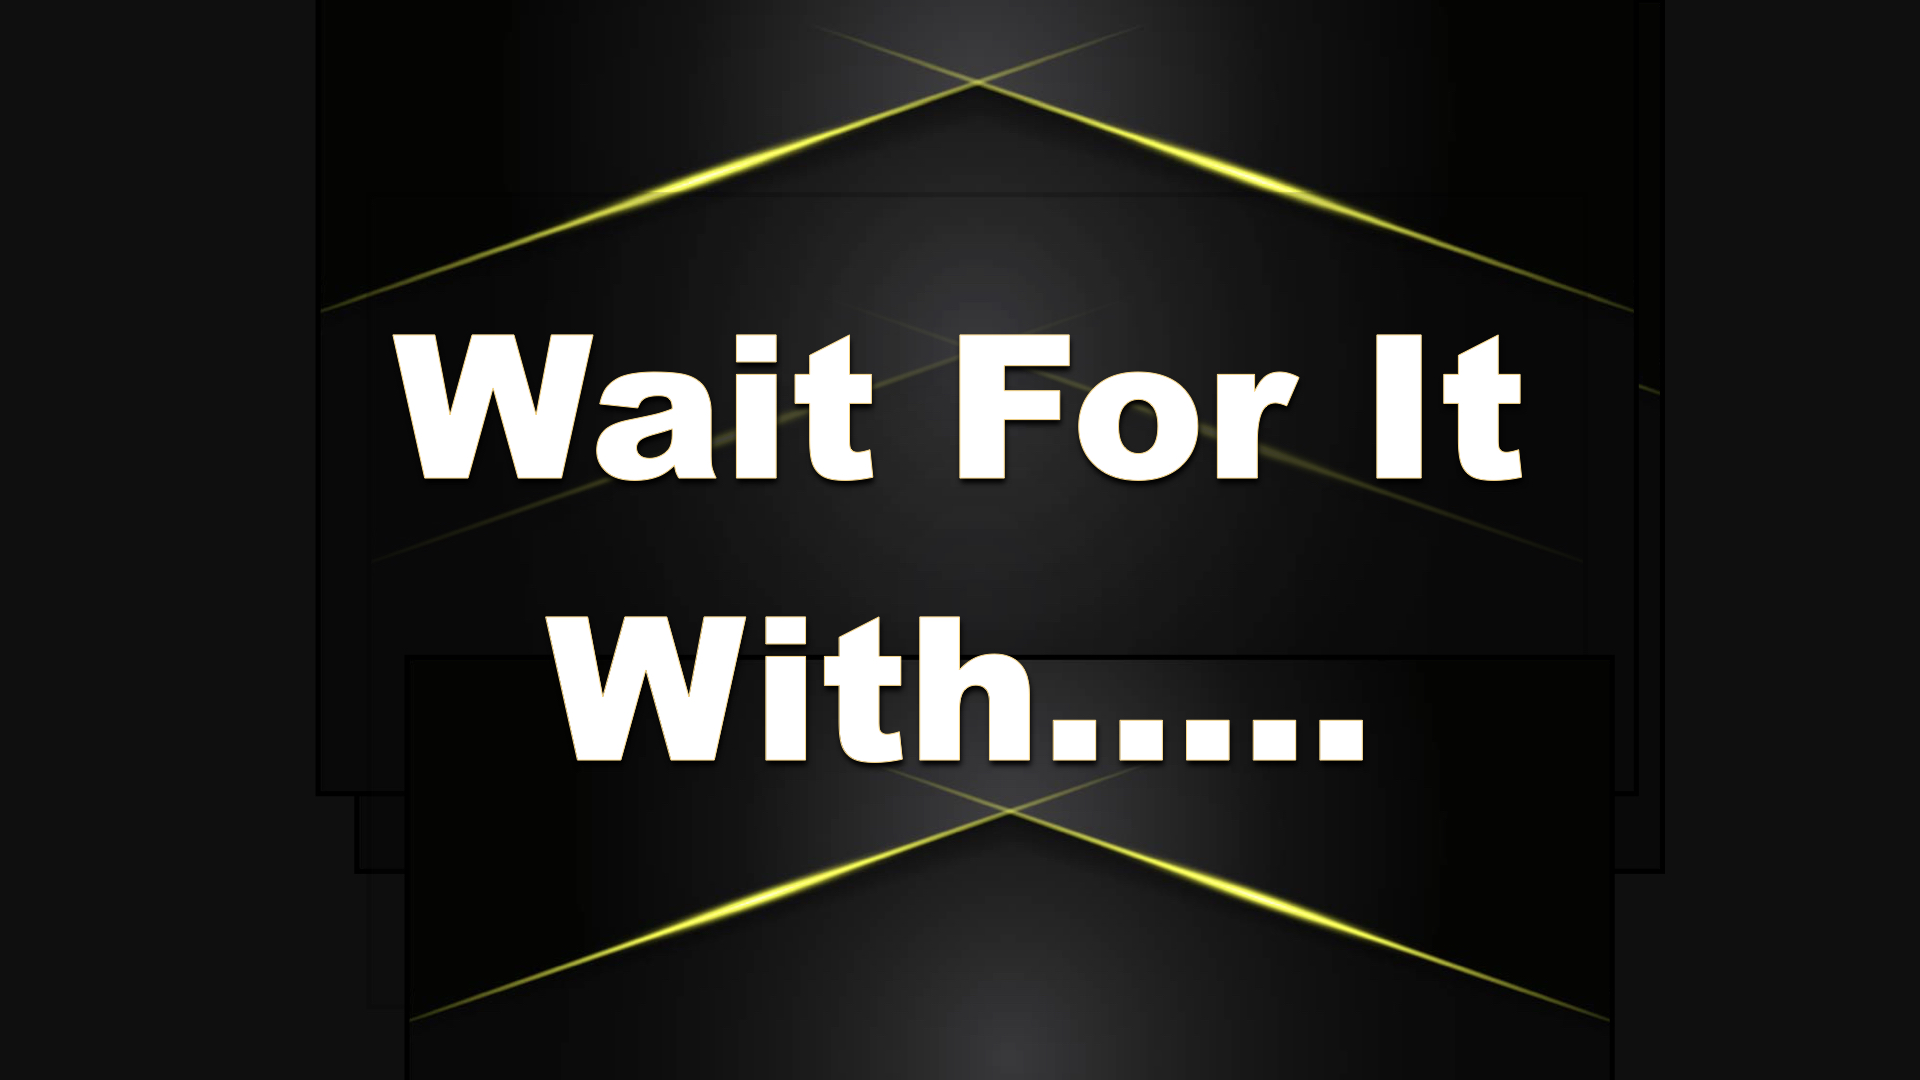 Wait with Thanksgiving  7312019 51054 PM